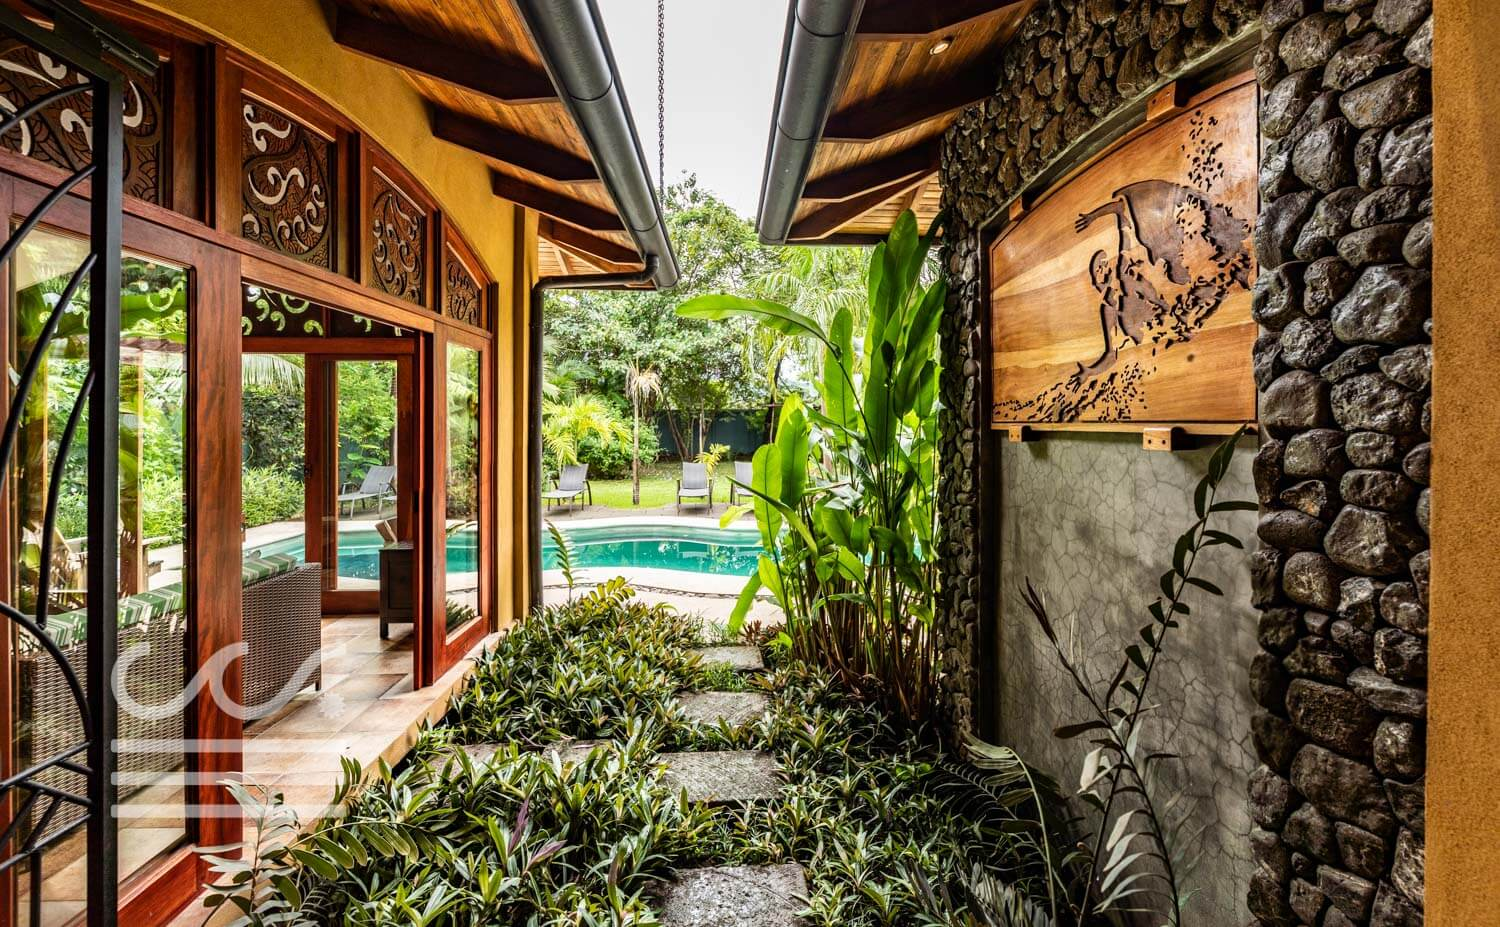 Endless-Summer-Wanderlust-Realty-Real-Estate-Rentals-Nosara-Costa-Rica-10.jpg